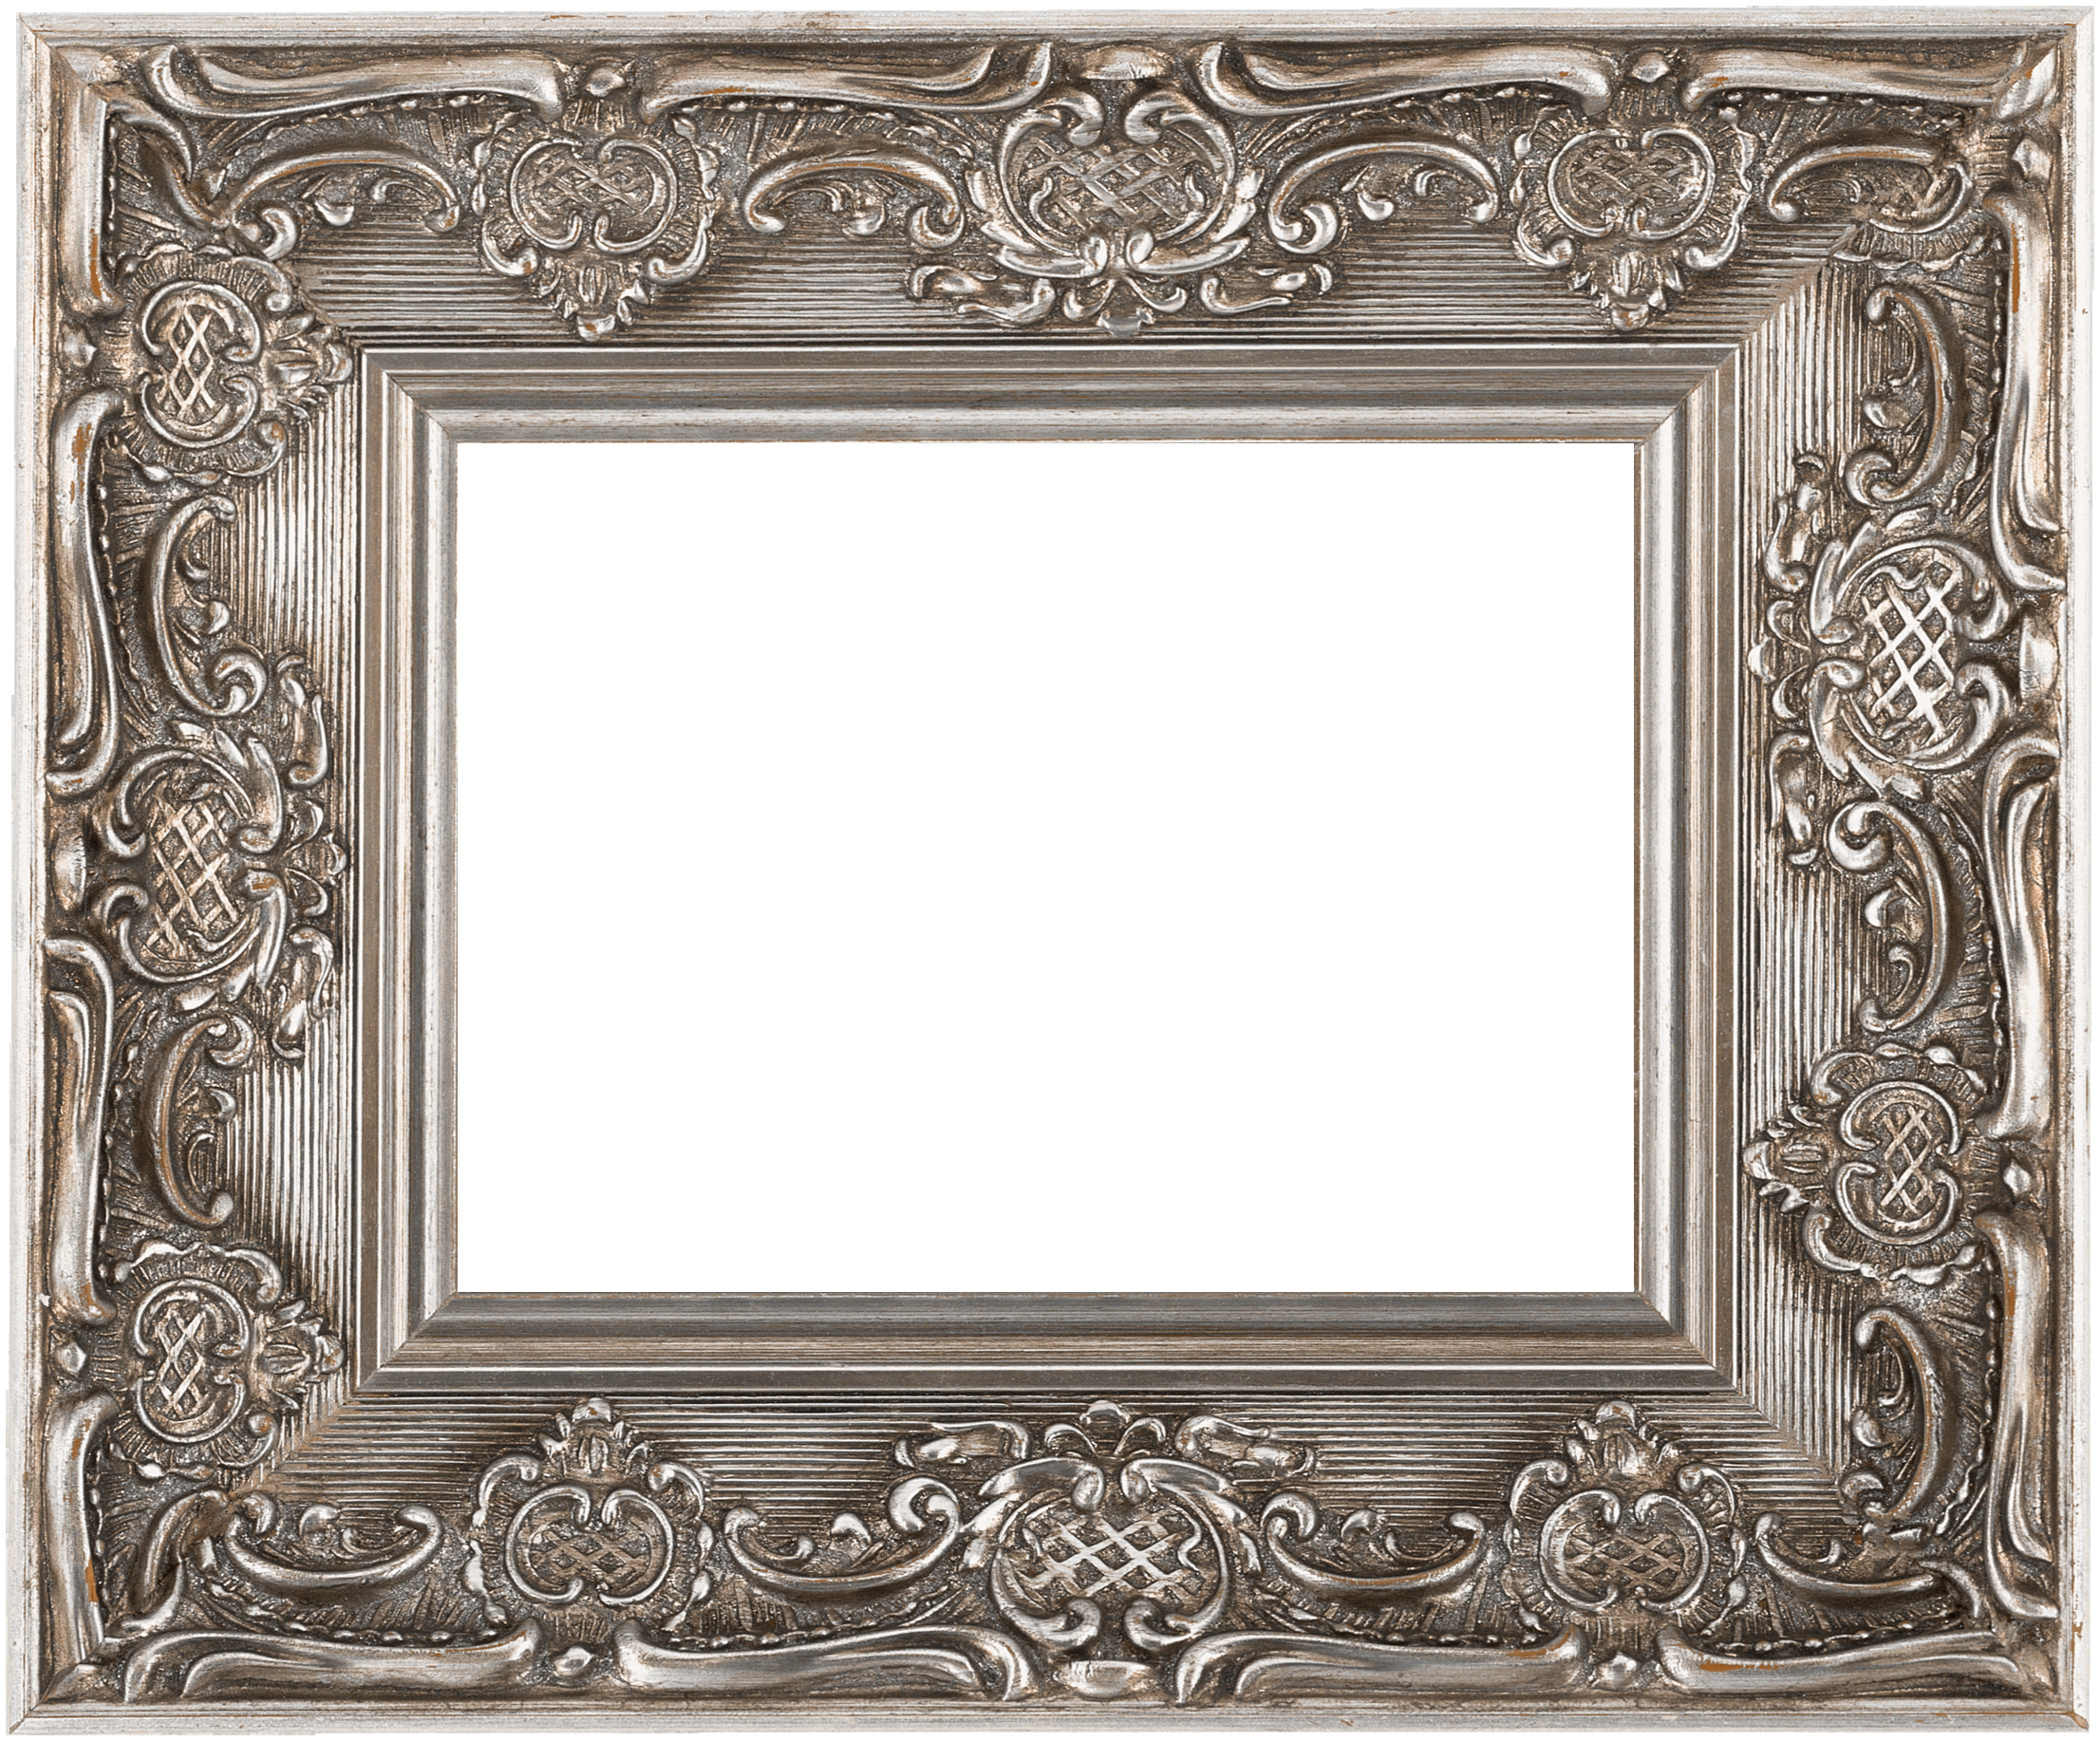 cvd etetwi ornate frame HD Wallpaper